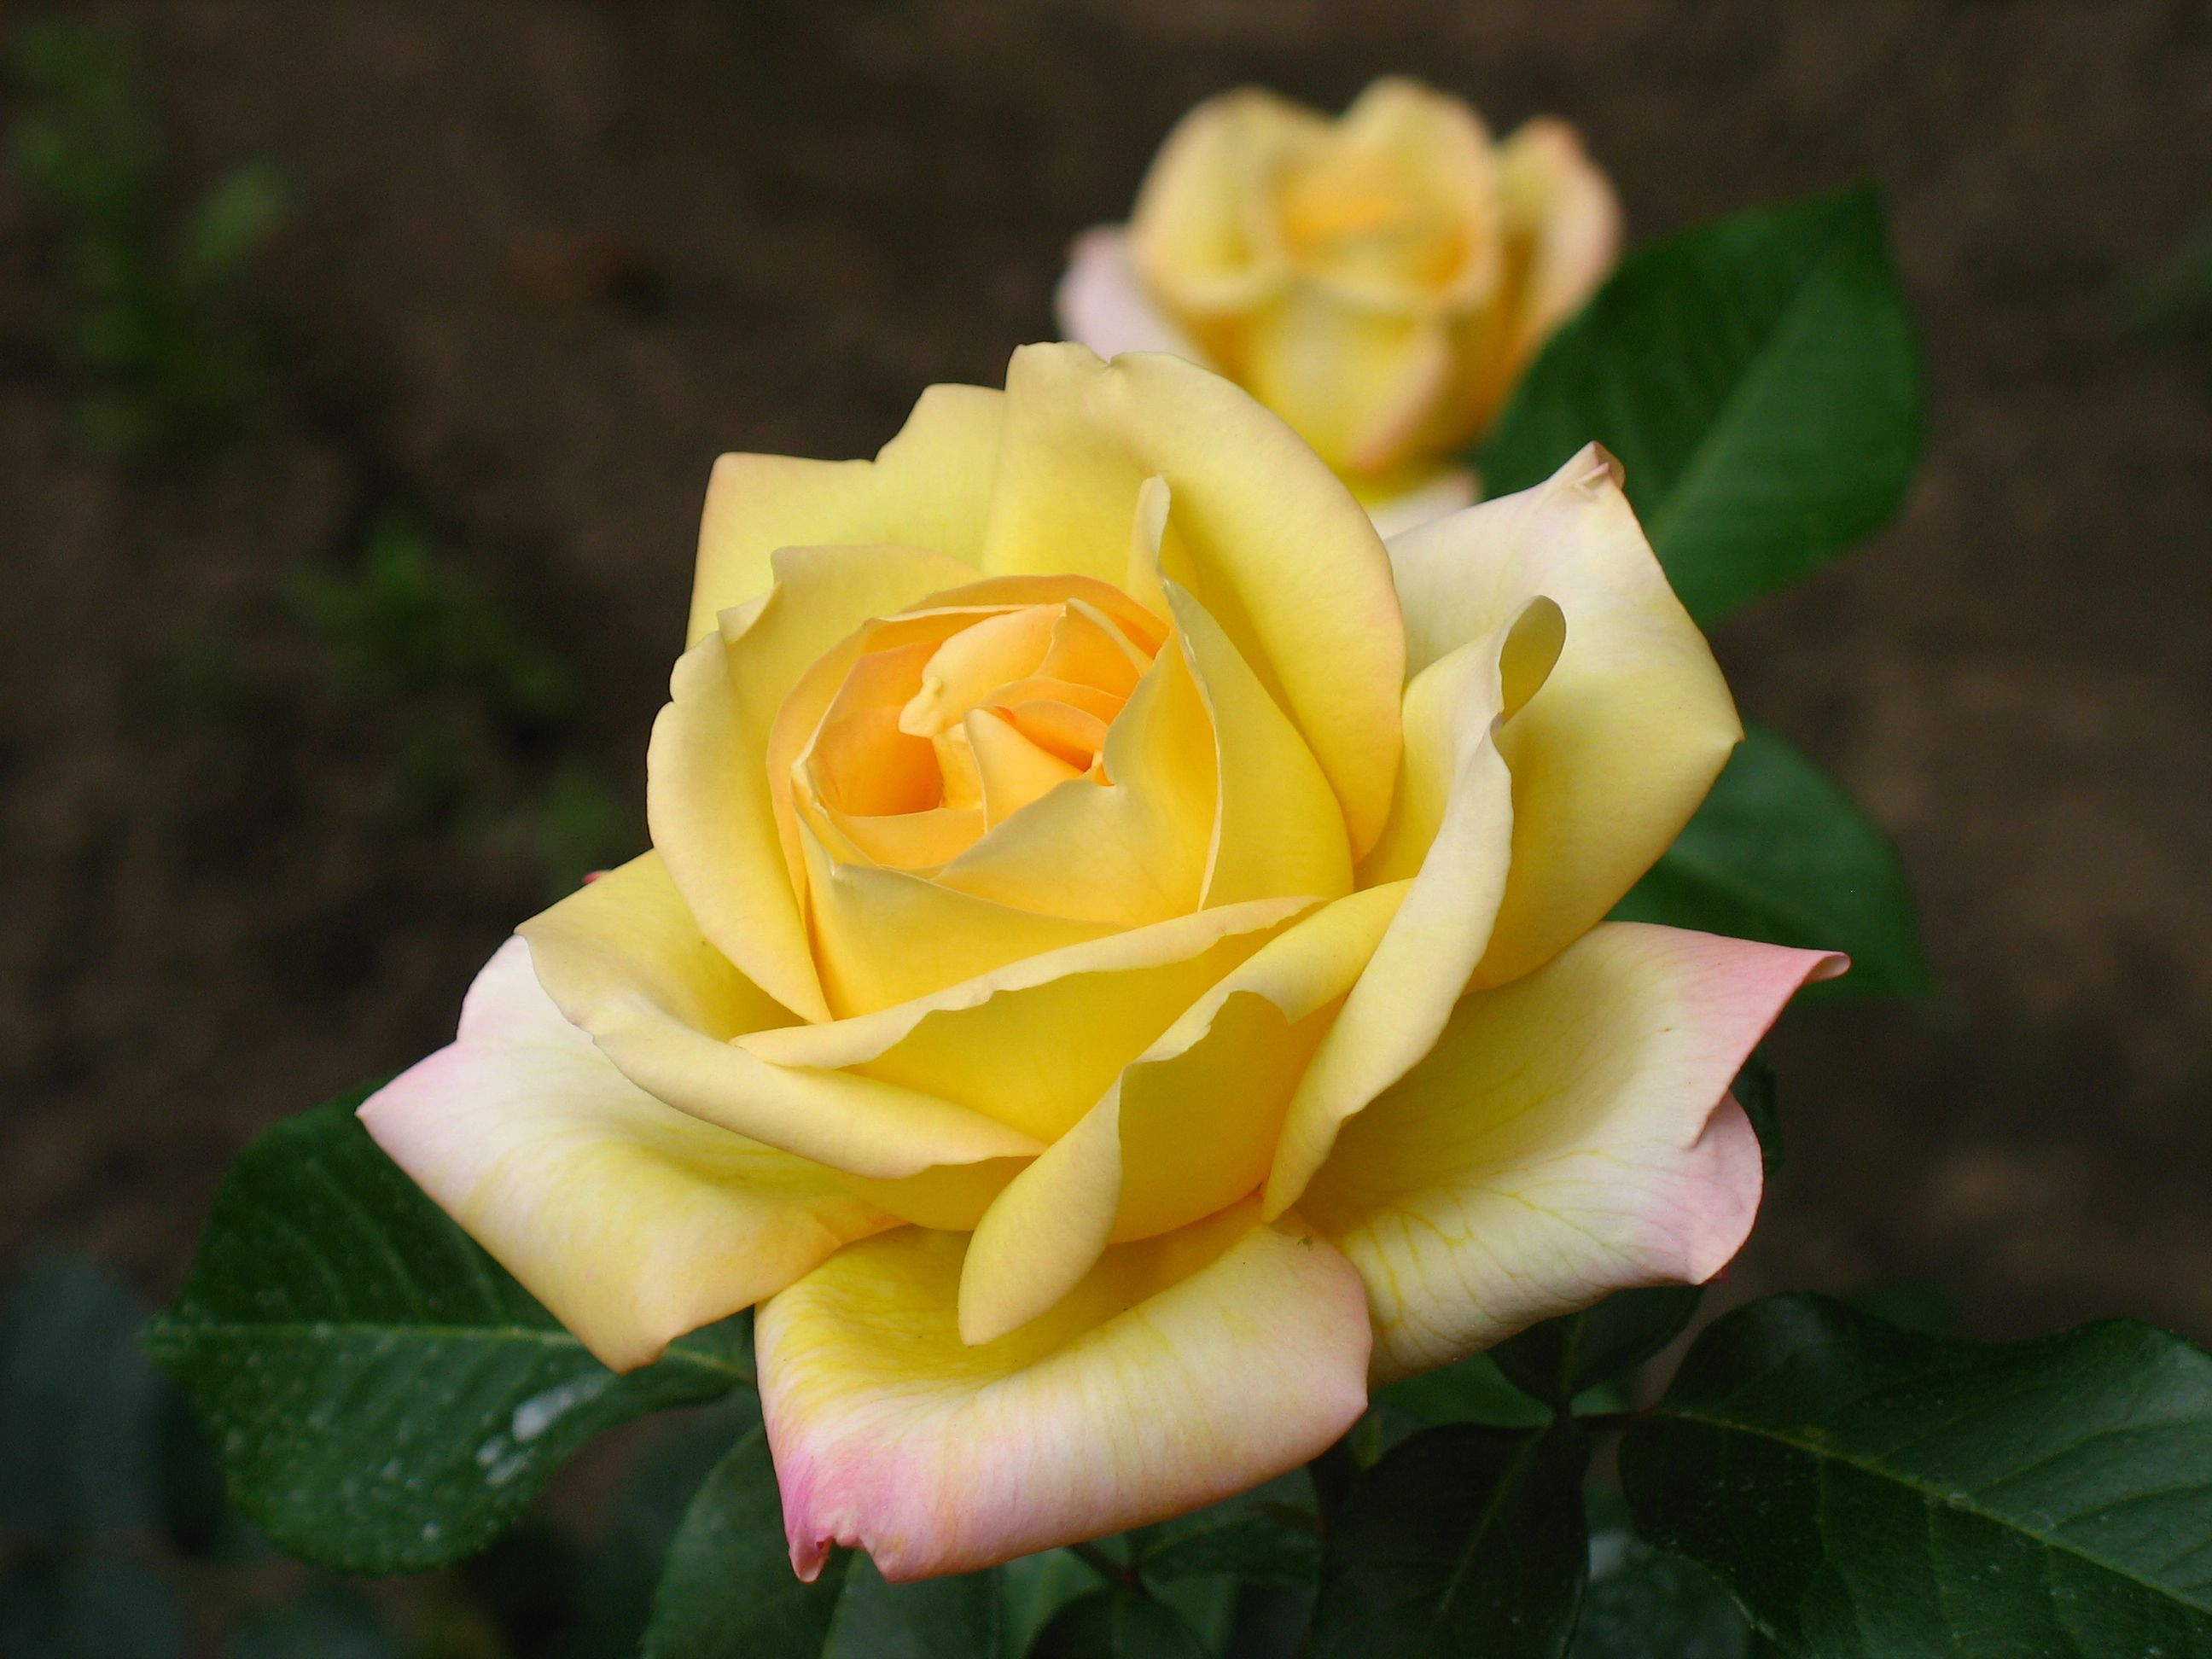 17 best geel rose images on pinterest flowers yellow roses and beautiful yellow roses 4g 25921944 dhlflorist Image collections